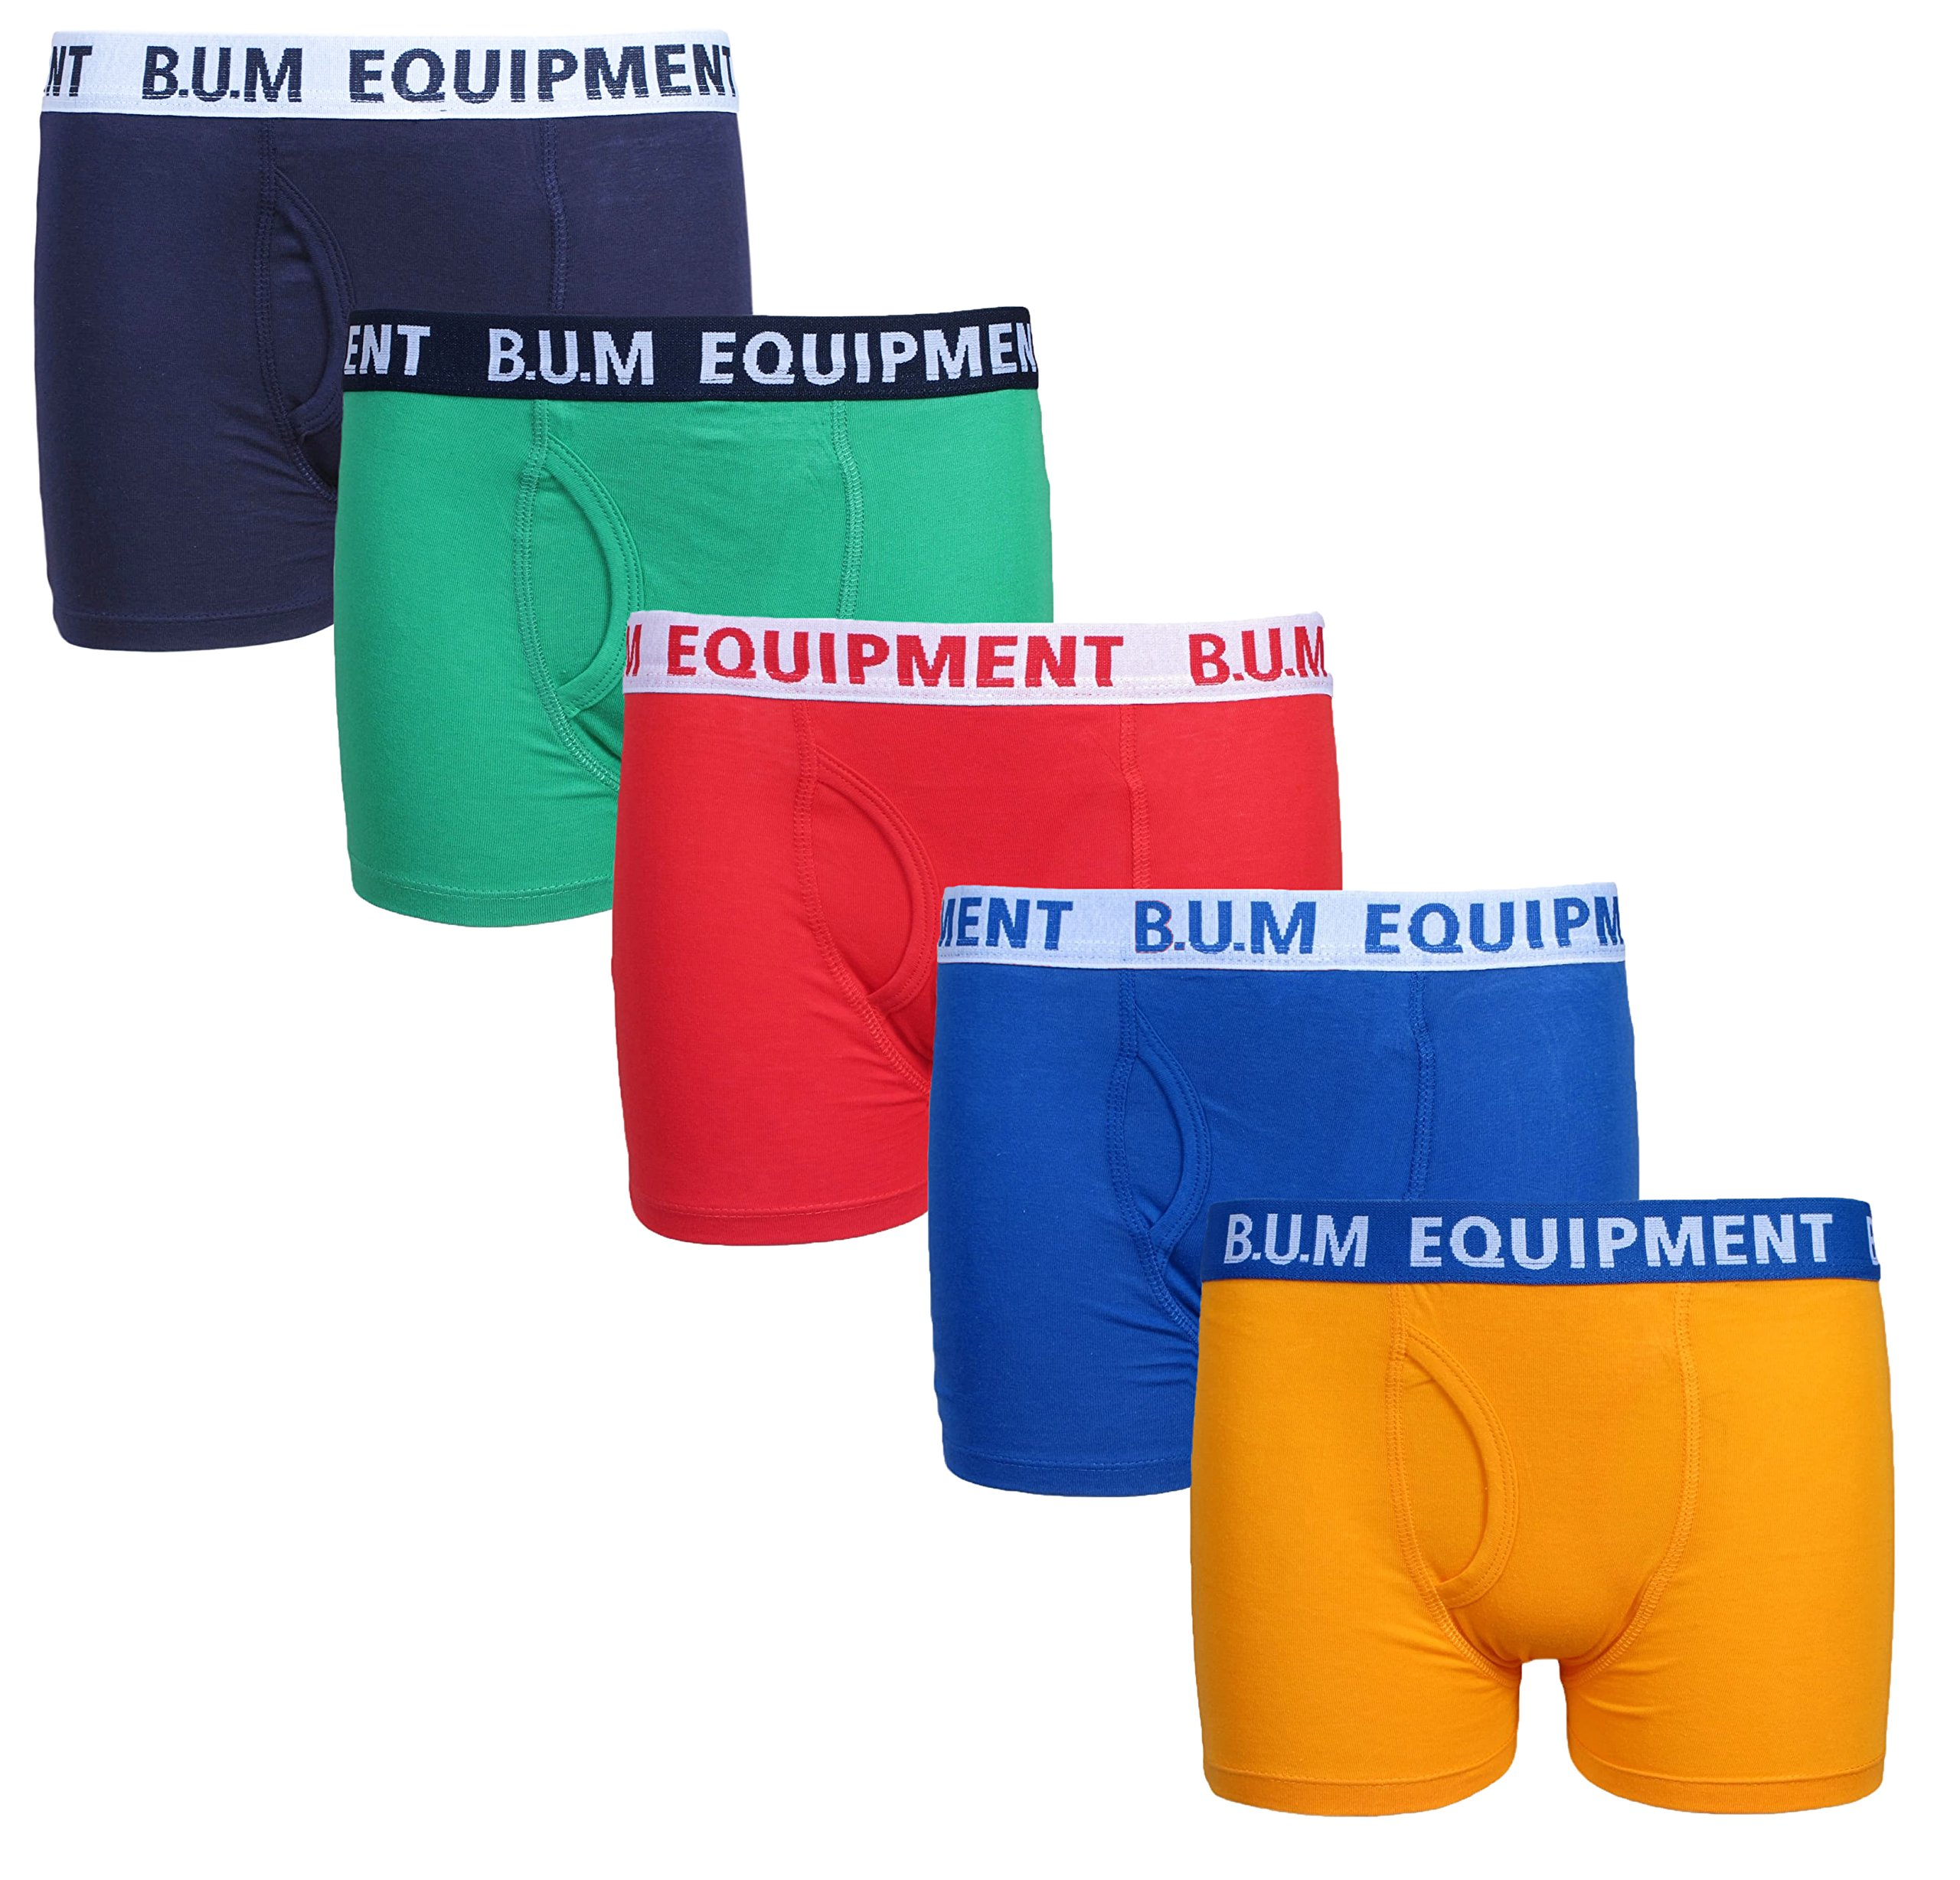 B.U.M. Equipment Boys 5 Pack Solid Boxer Briefs Underwear, Brights, Size 4/5